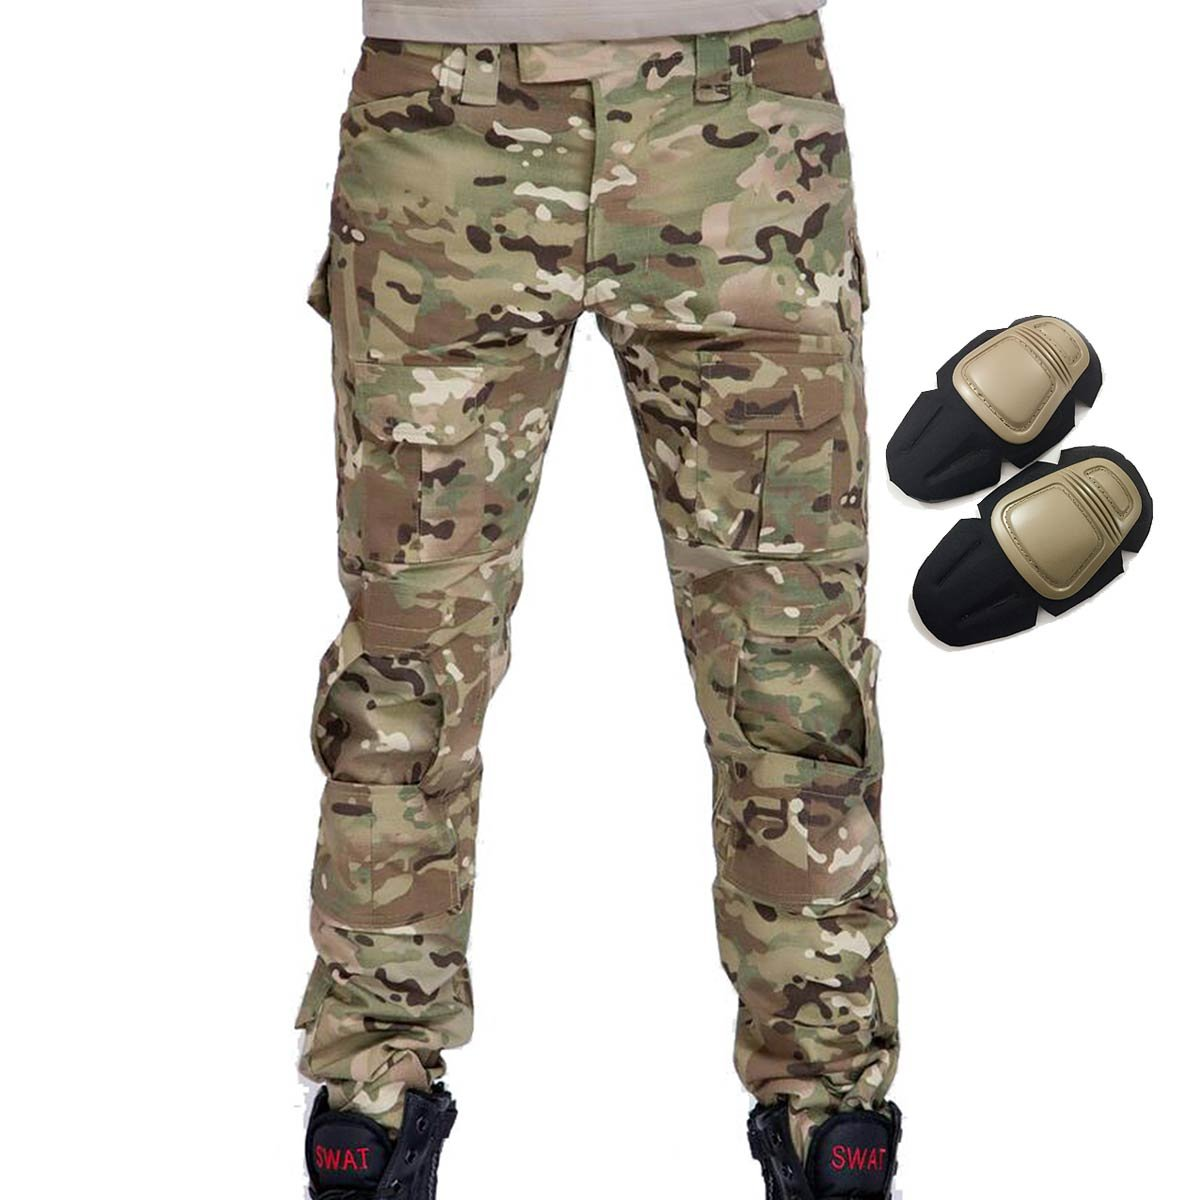 Military Army Tactical Airsoft Paintball Shooting Pants Combat Men Pants with Knee Pads Multicam MC (XXL) by H World Shopping